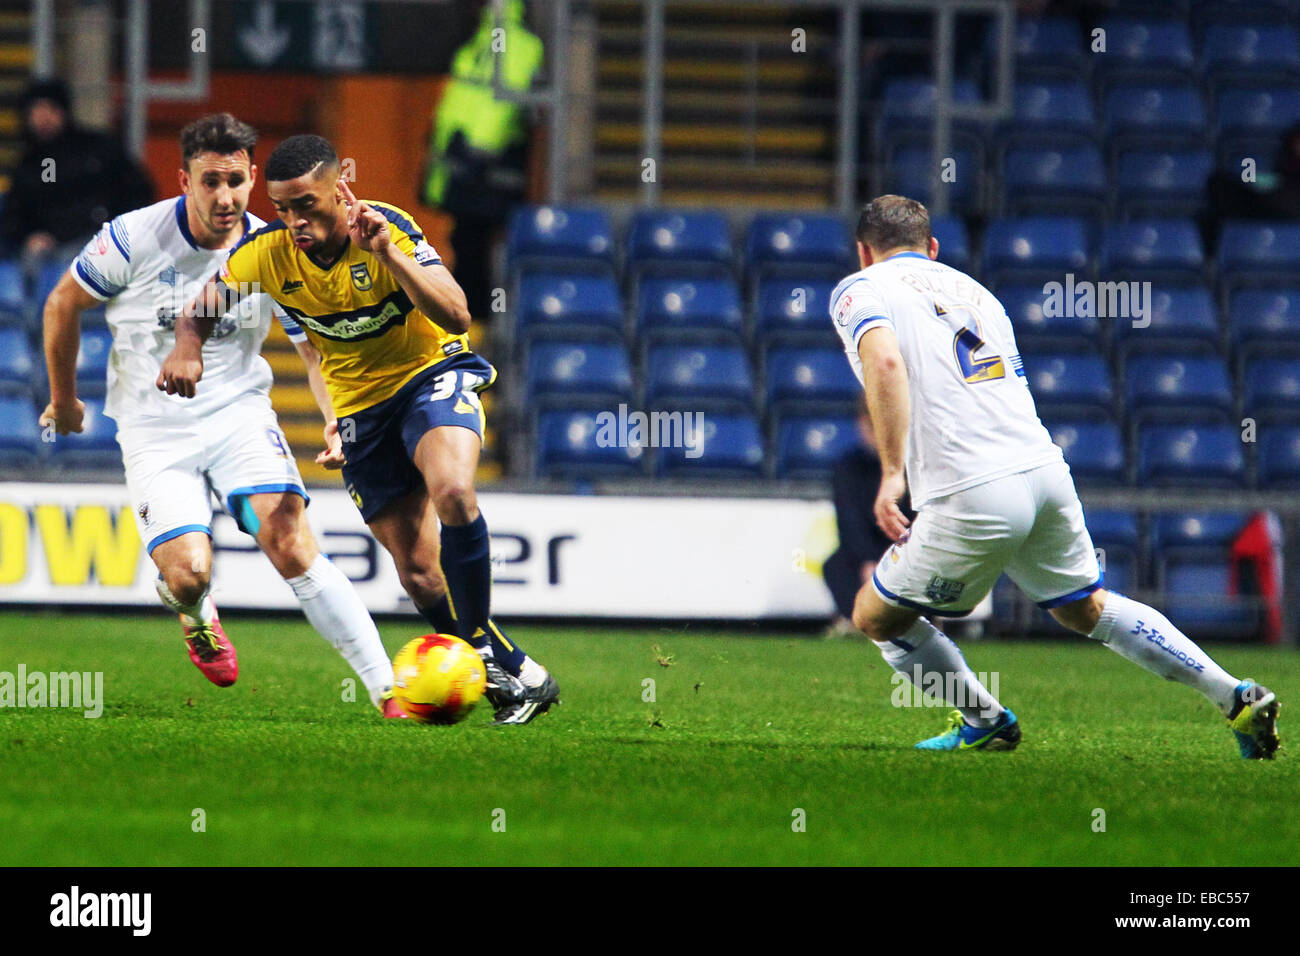 Kassam Stadium, Oxford Job name: sport Notes: FOOTBALL: Oxford United v AFC Wimbledon Pictured here is Oxford 34 Stock Photo